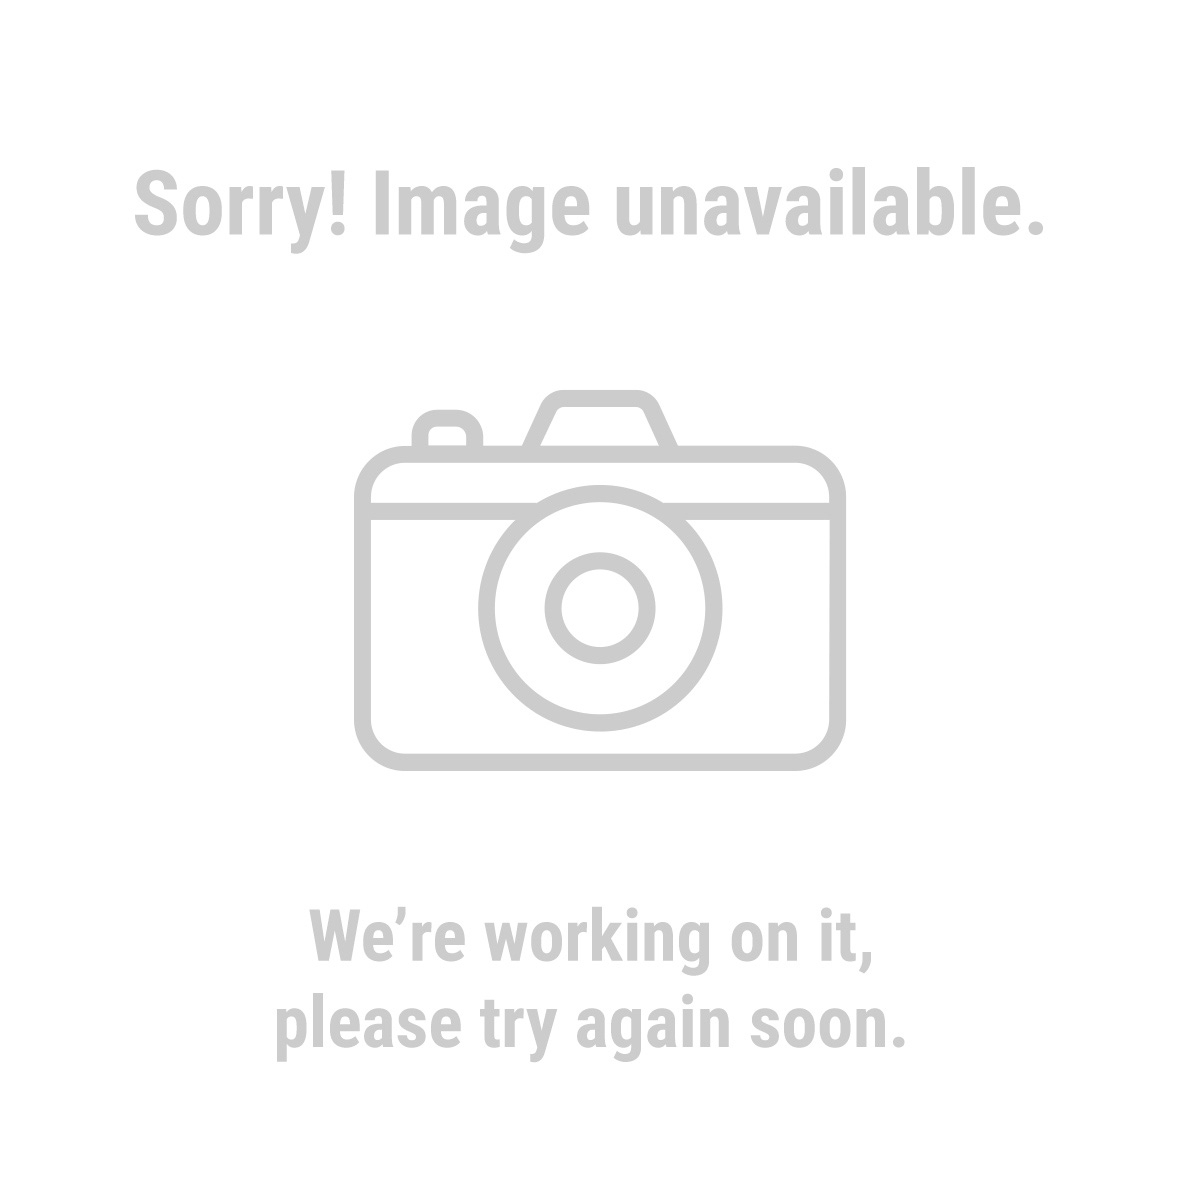 Warrior® 69614 4-1/2 in. 80 Grit Resin Fiber Sanding Discs 5 Pc